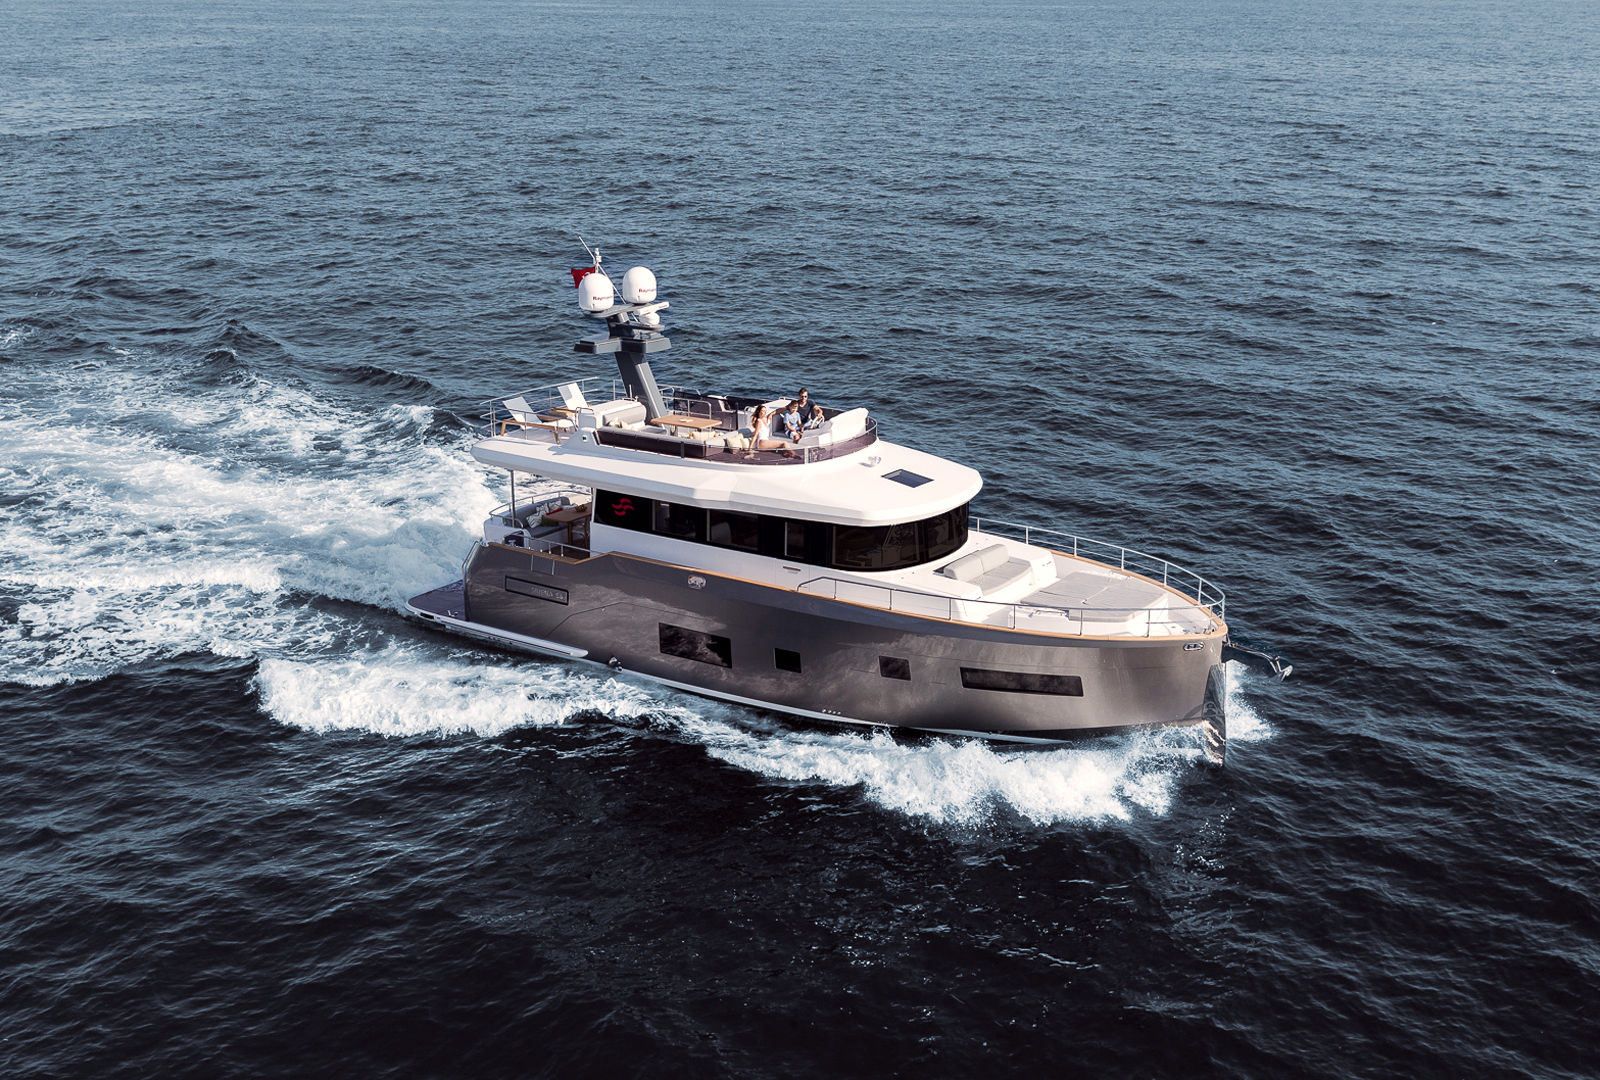 360 VR Virtual Tours of the Sirena 58 – VRCLOUD